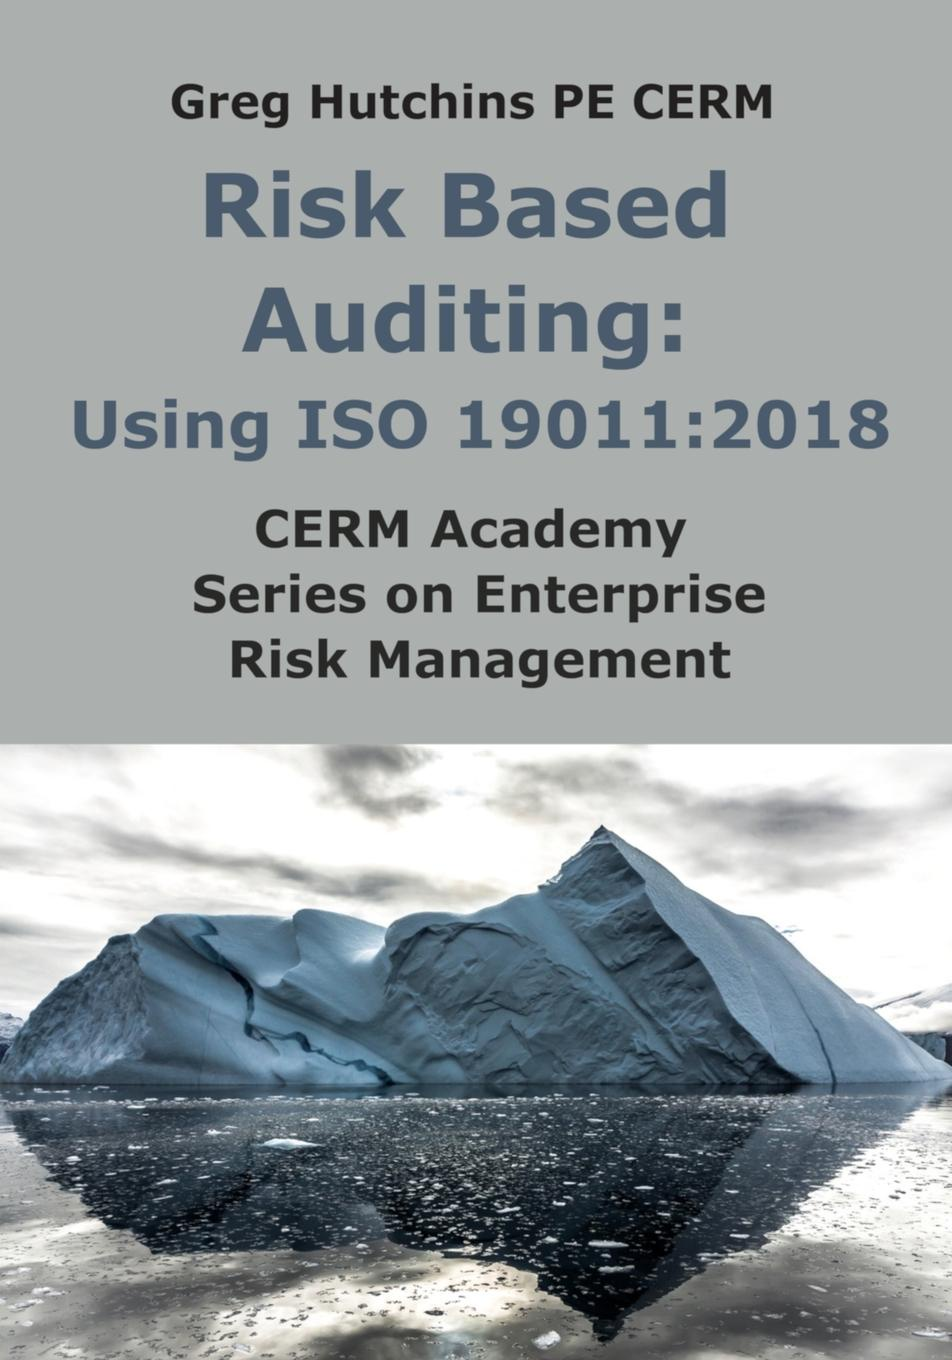 Greg Hutchins Risk Based Auditing. Using ISO 19011:2018 arif ahmed understanding and conducting information systems auditing